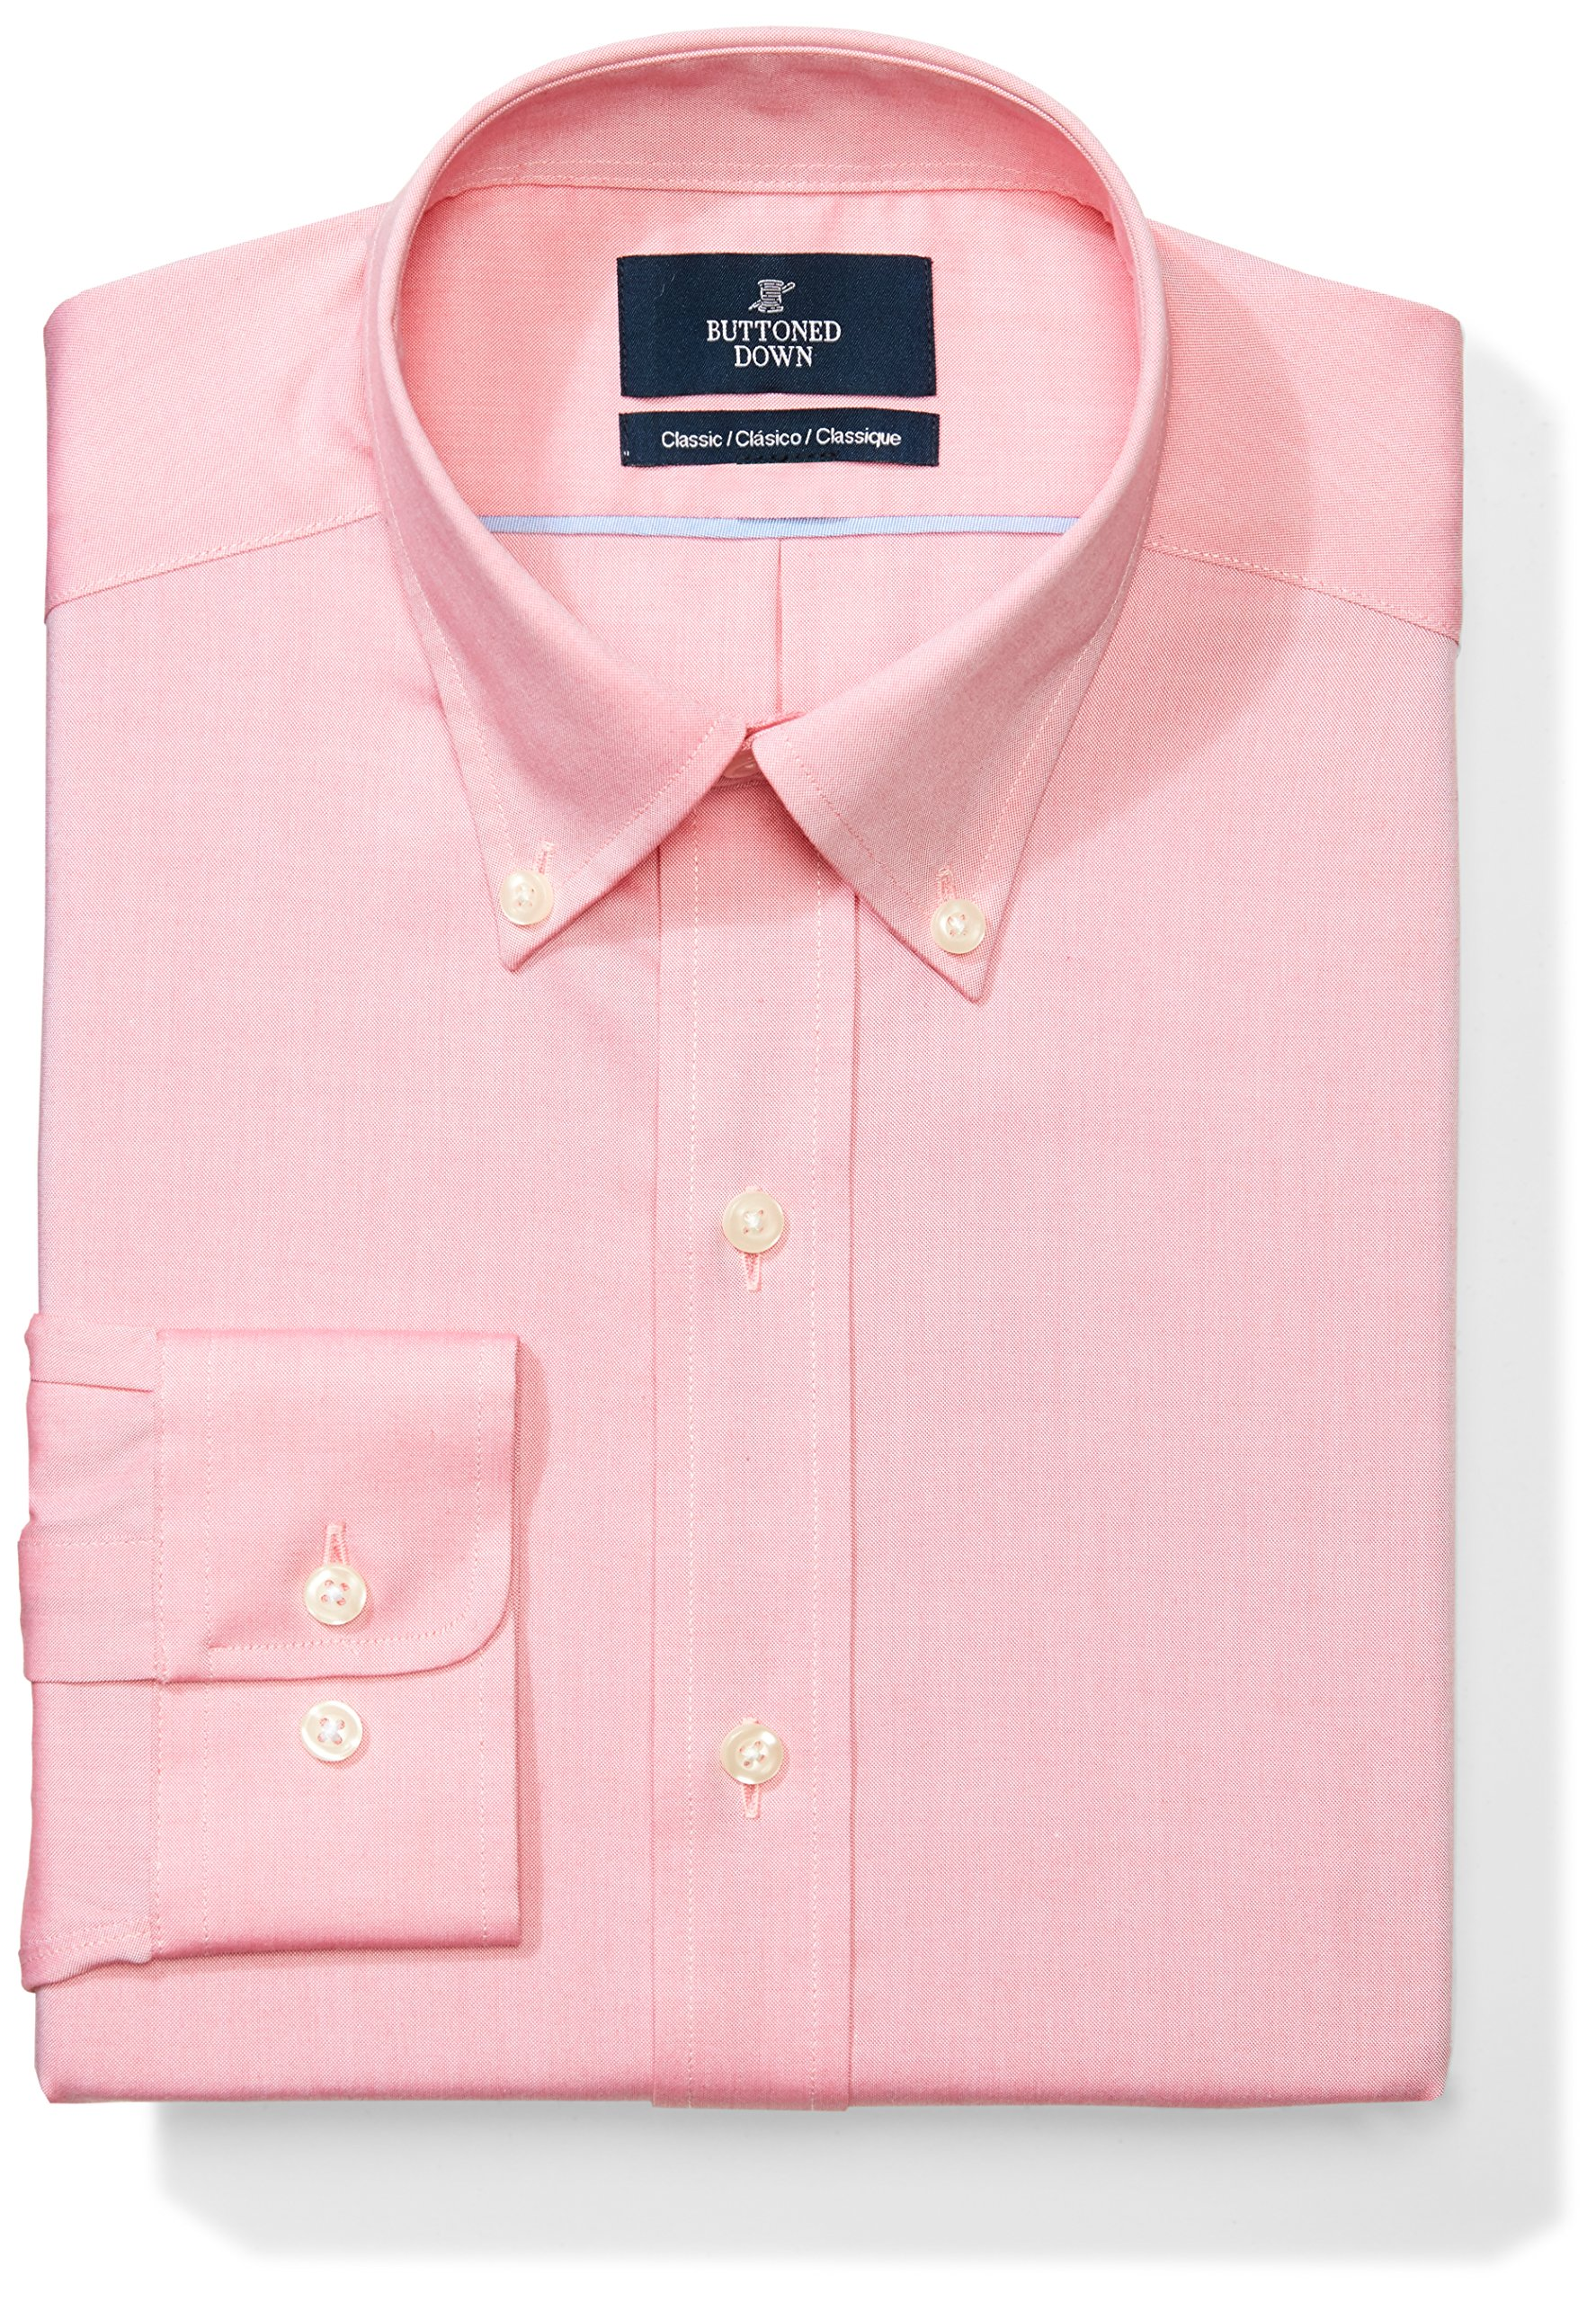 Buttoned Down Men's Classic Fit Button-Collar Solid Non-Iron Dress Shirt (No Pocket), Pink, 15.5'' Neck 32'' Sleeve